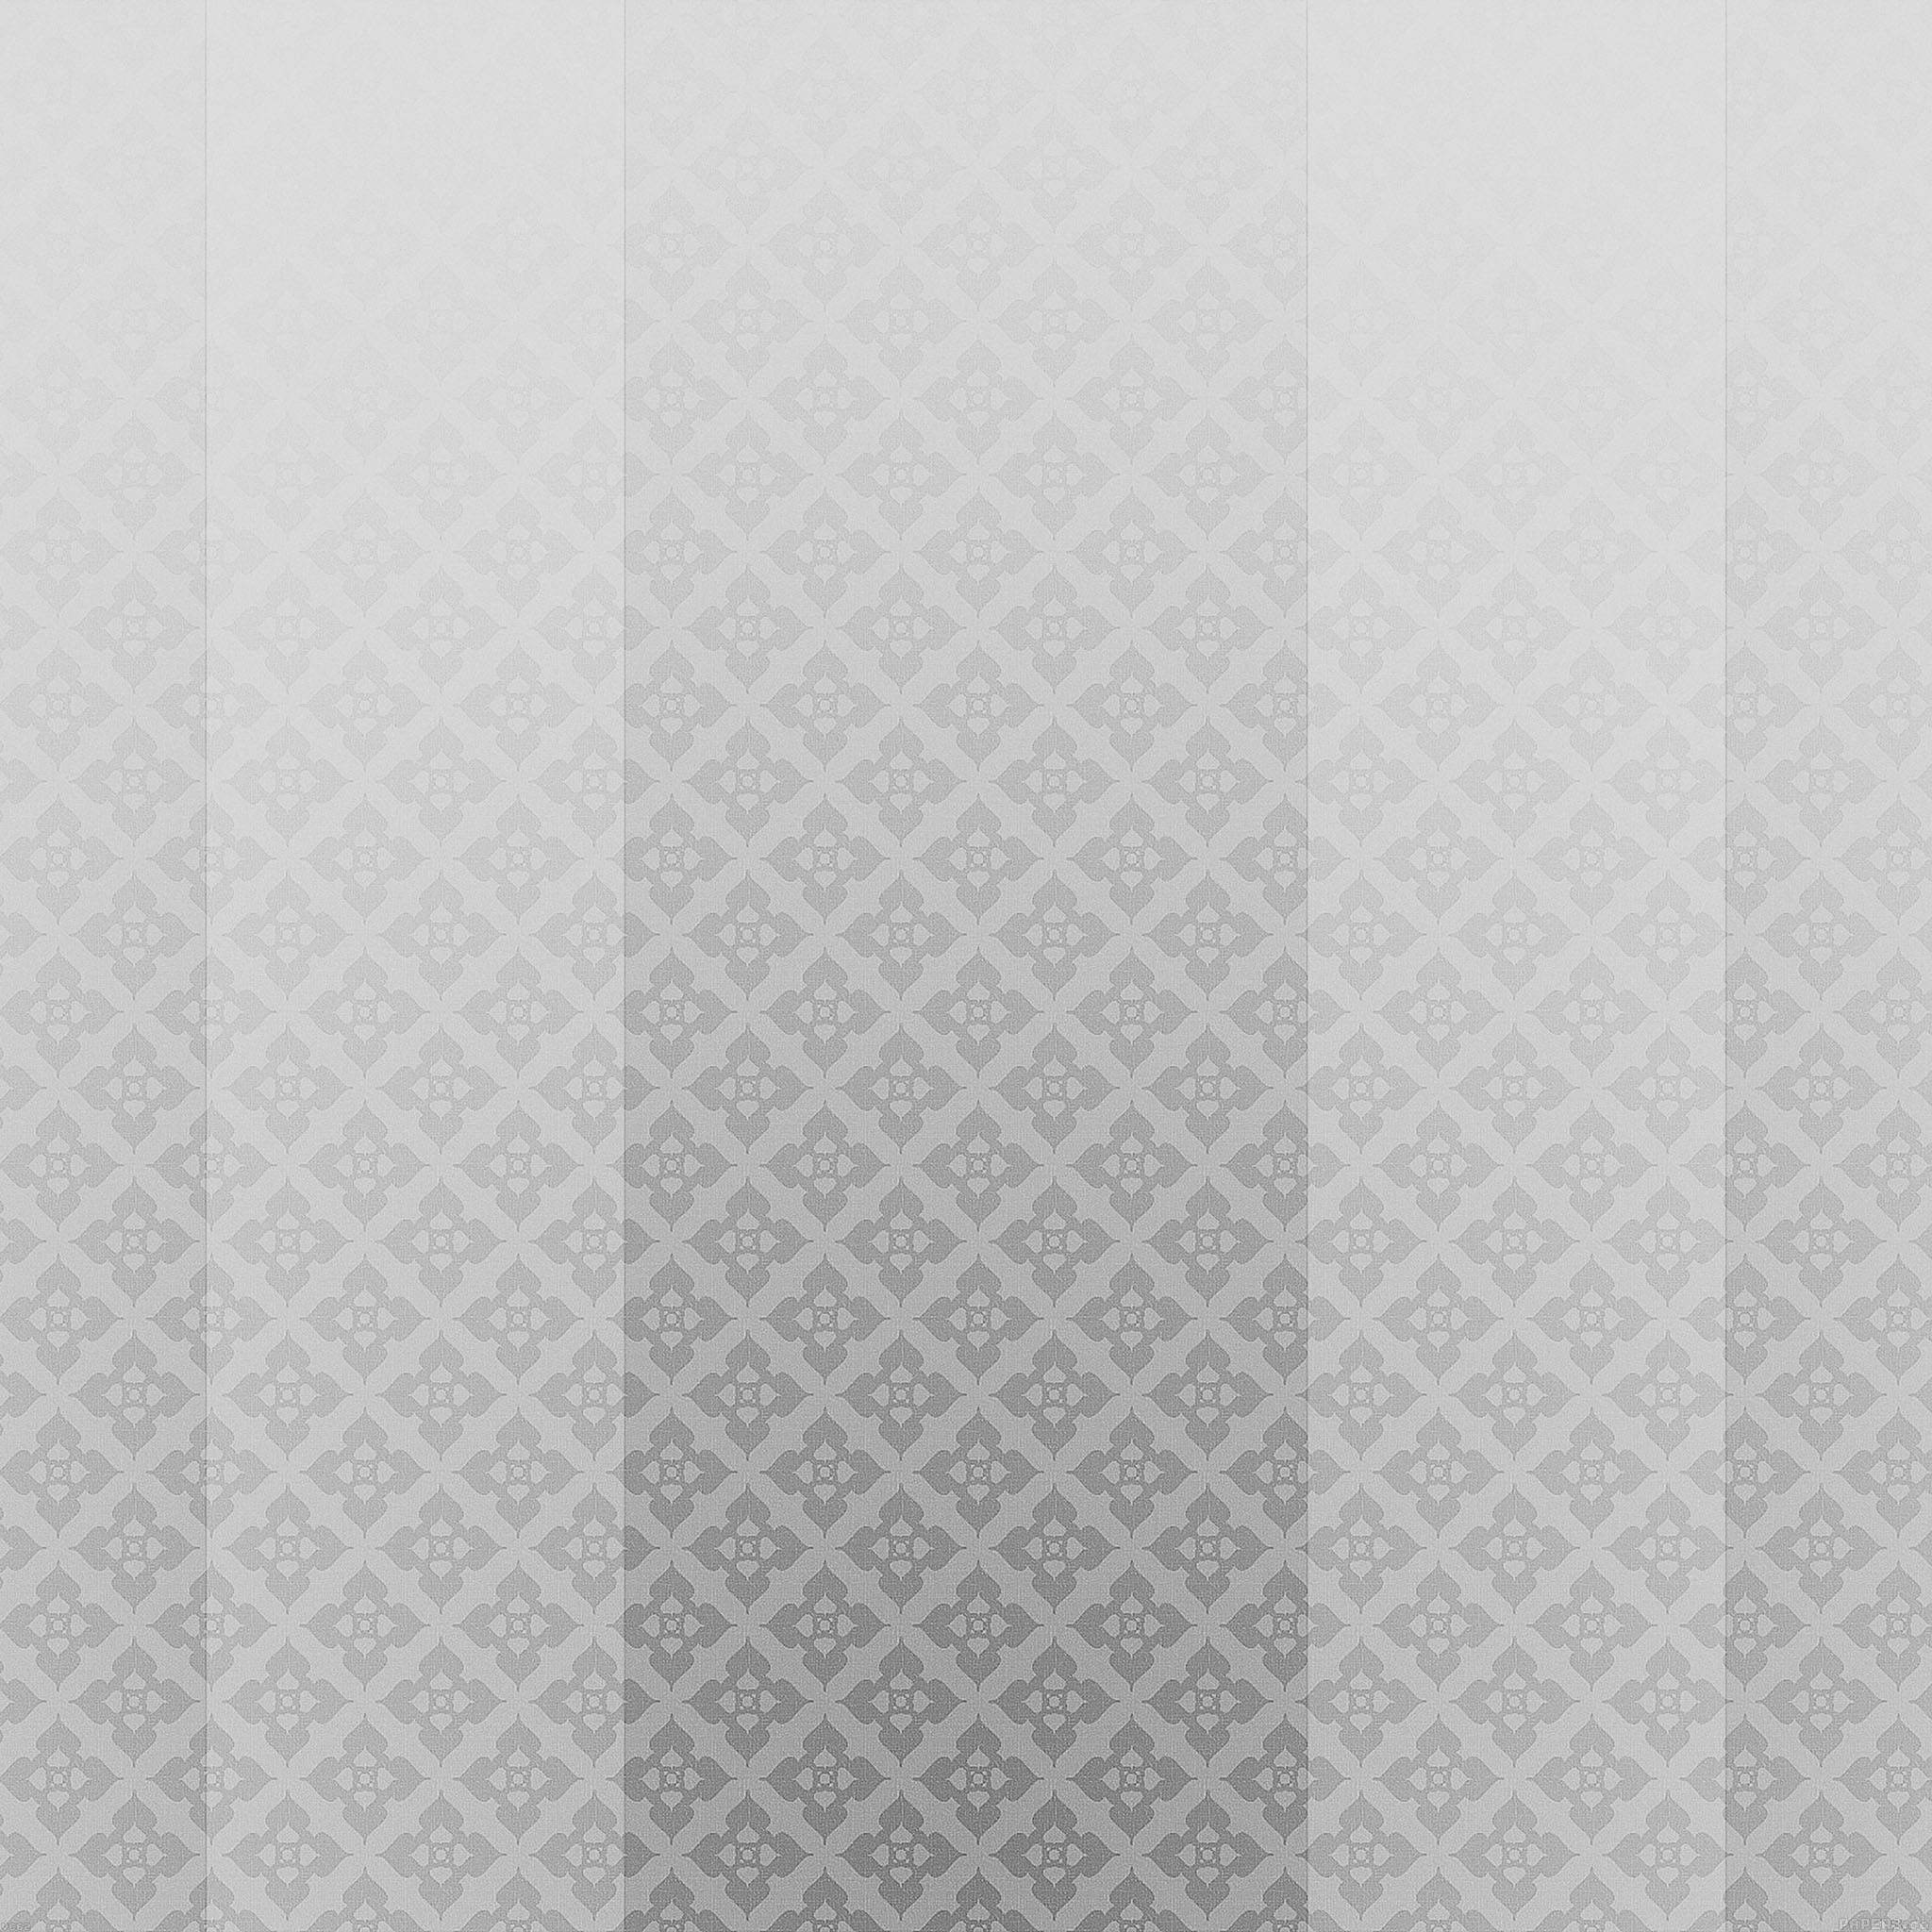 Wallpapers for White textured wallpaper